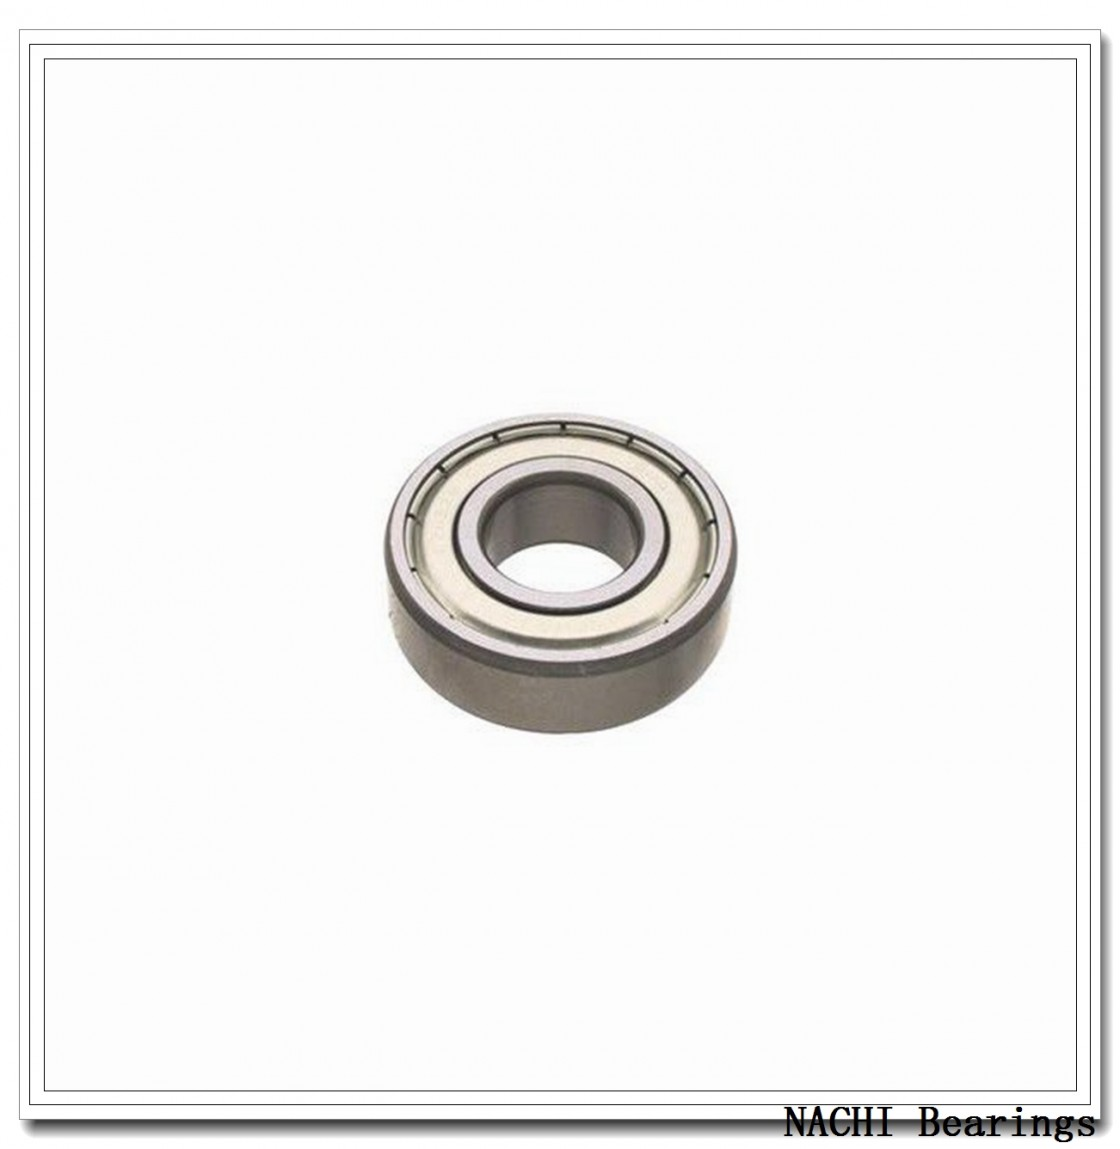 NACHI NP 410 cylindrical roller bearings